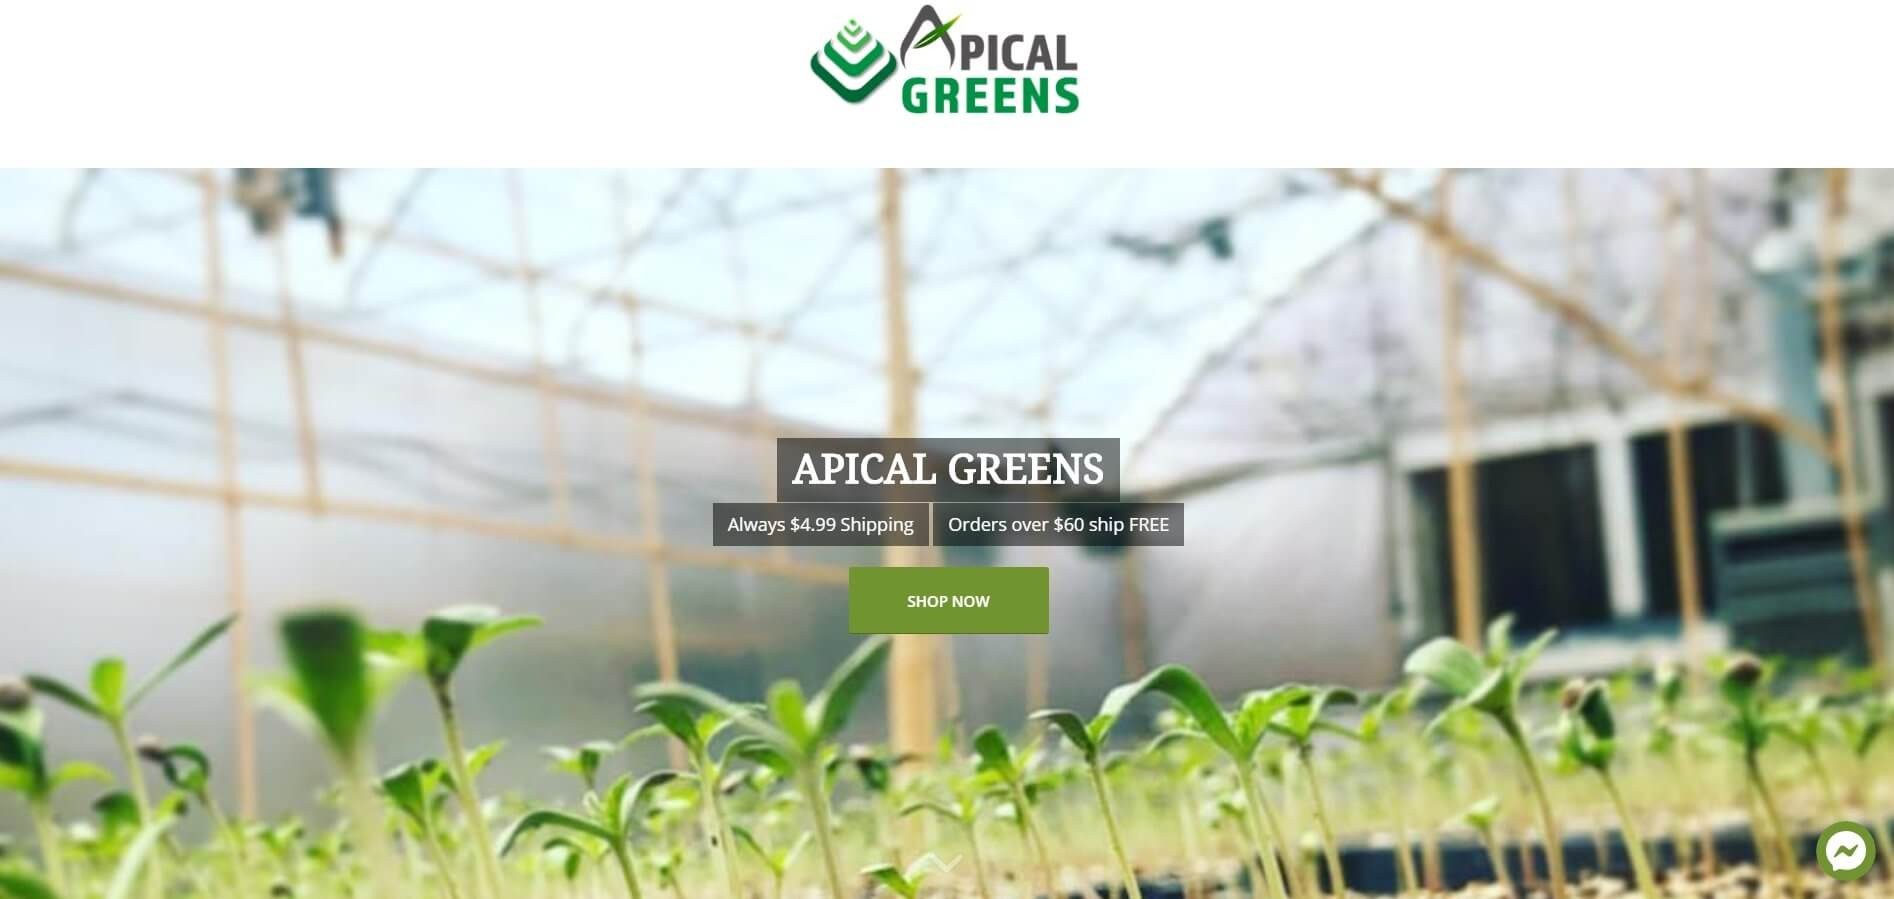 Valley List Welcomes – Apical Greens